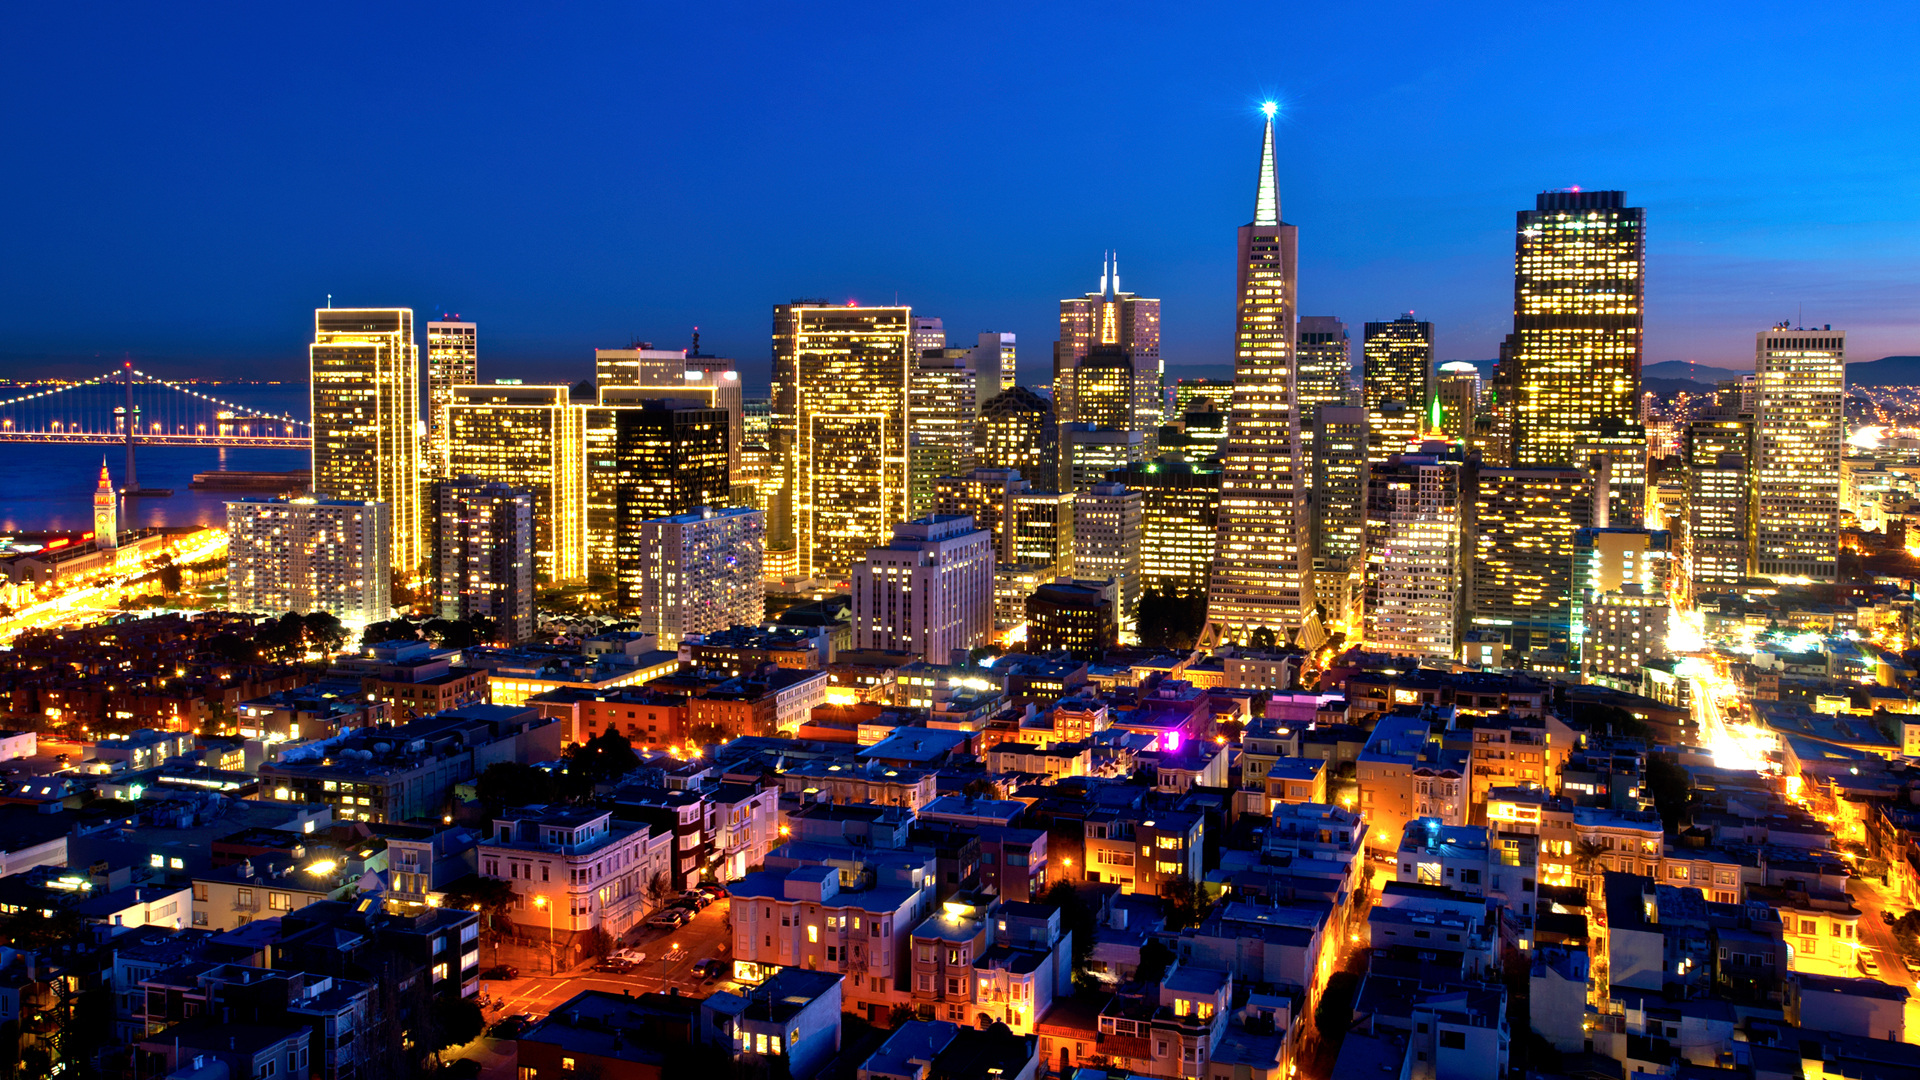 landscape beautiful san francisco at night wallpaper Wallpaper